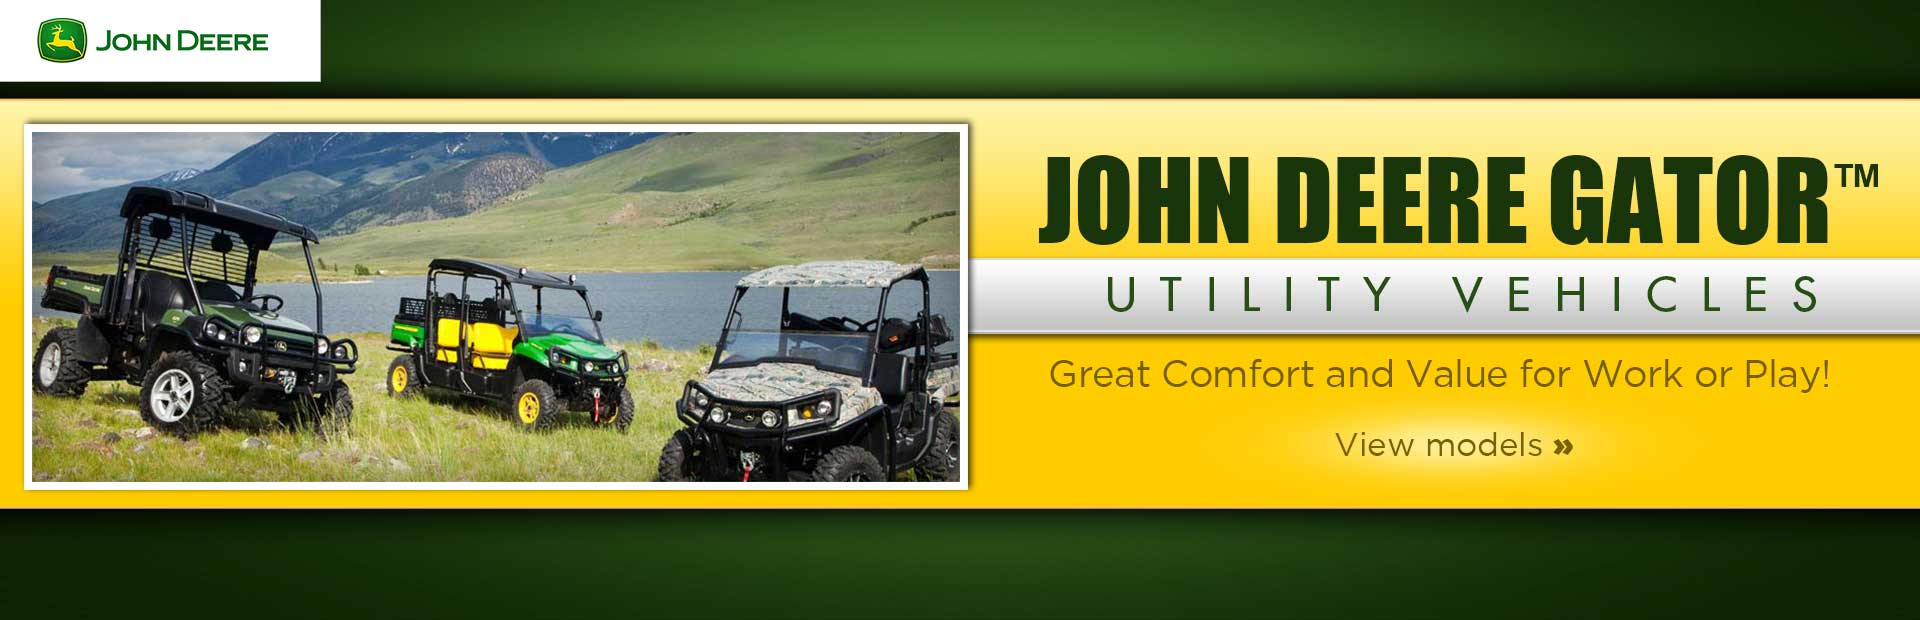 Click here to view John Deere Gator™ utility vehicles.